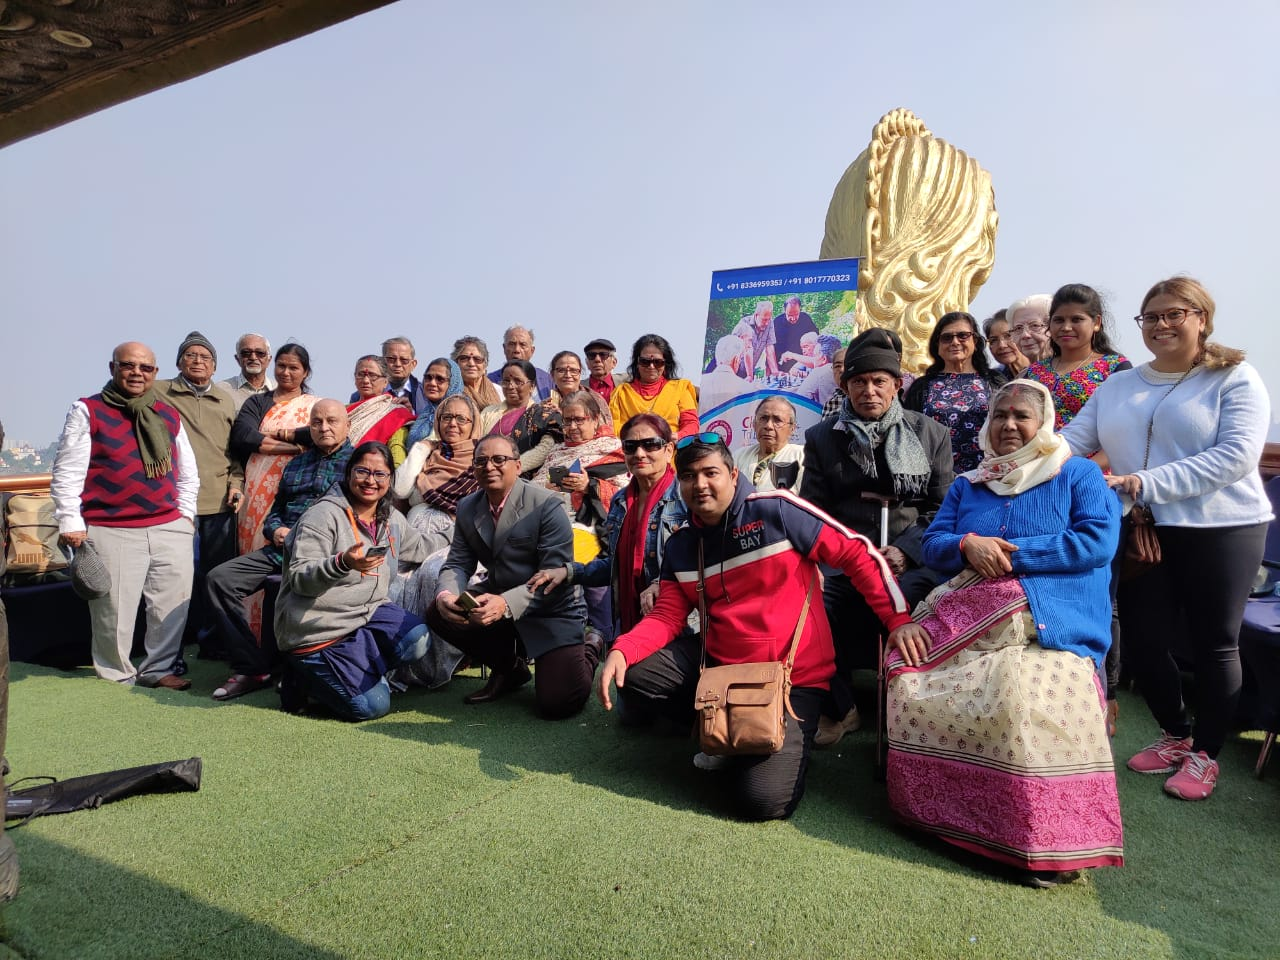 Our member on new year's picnic